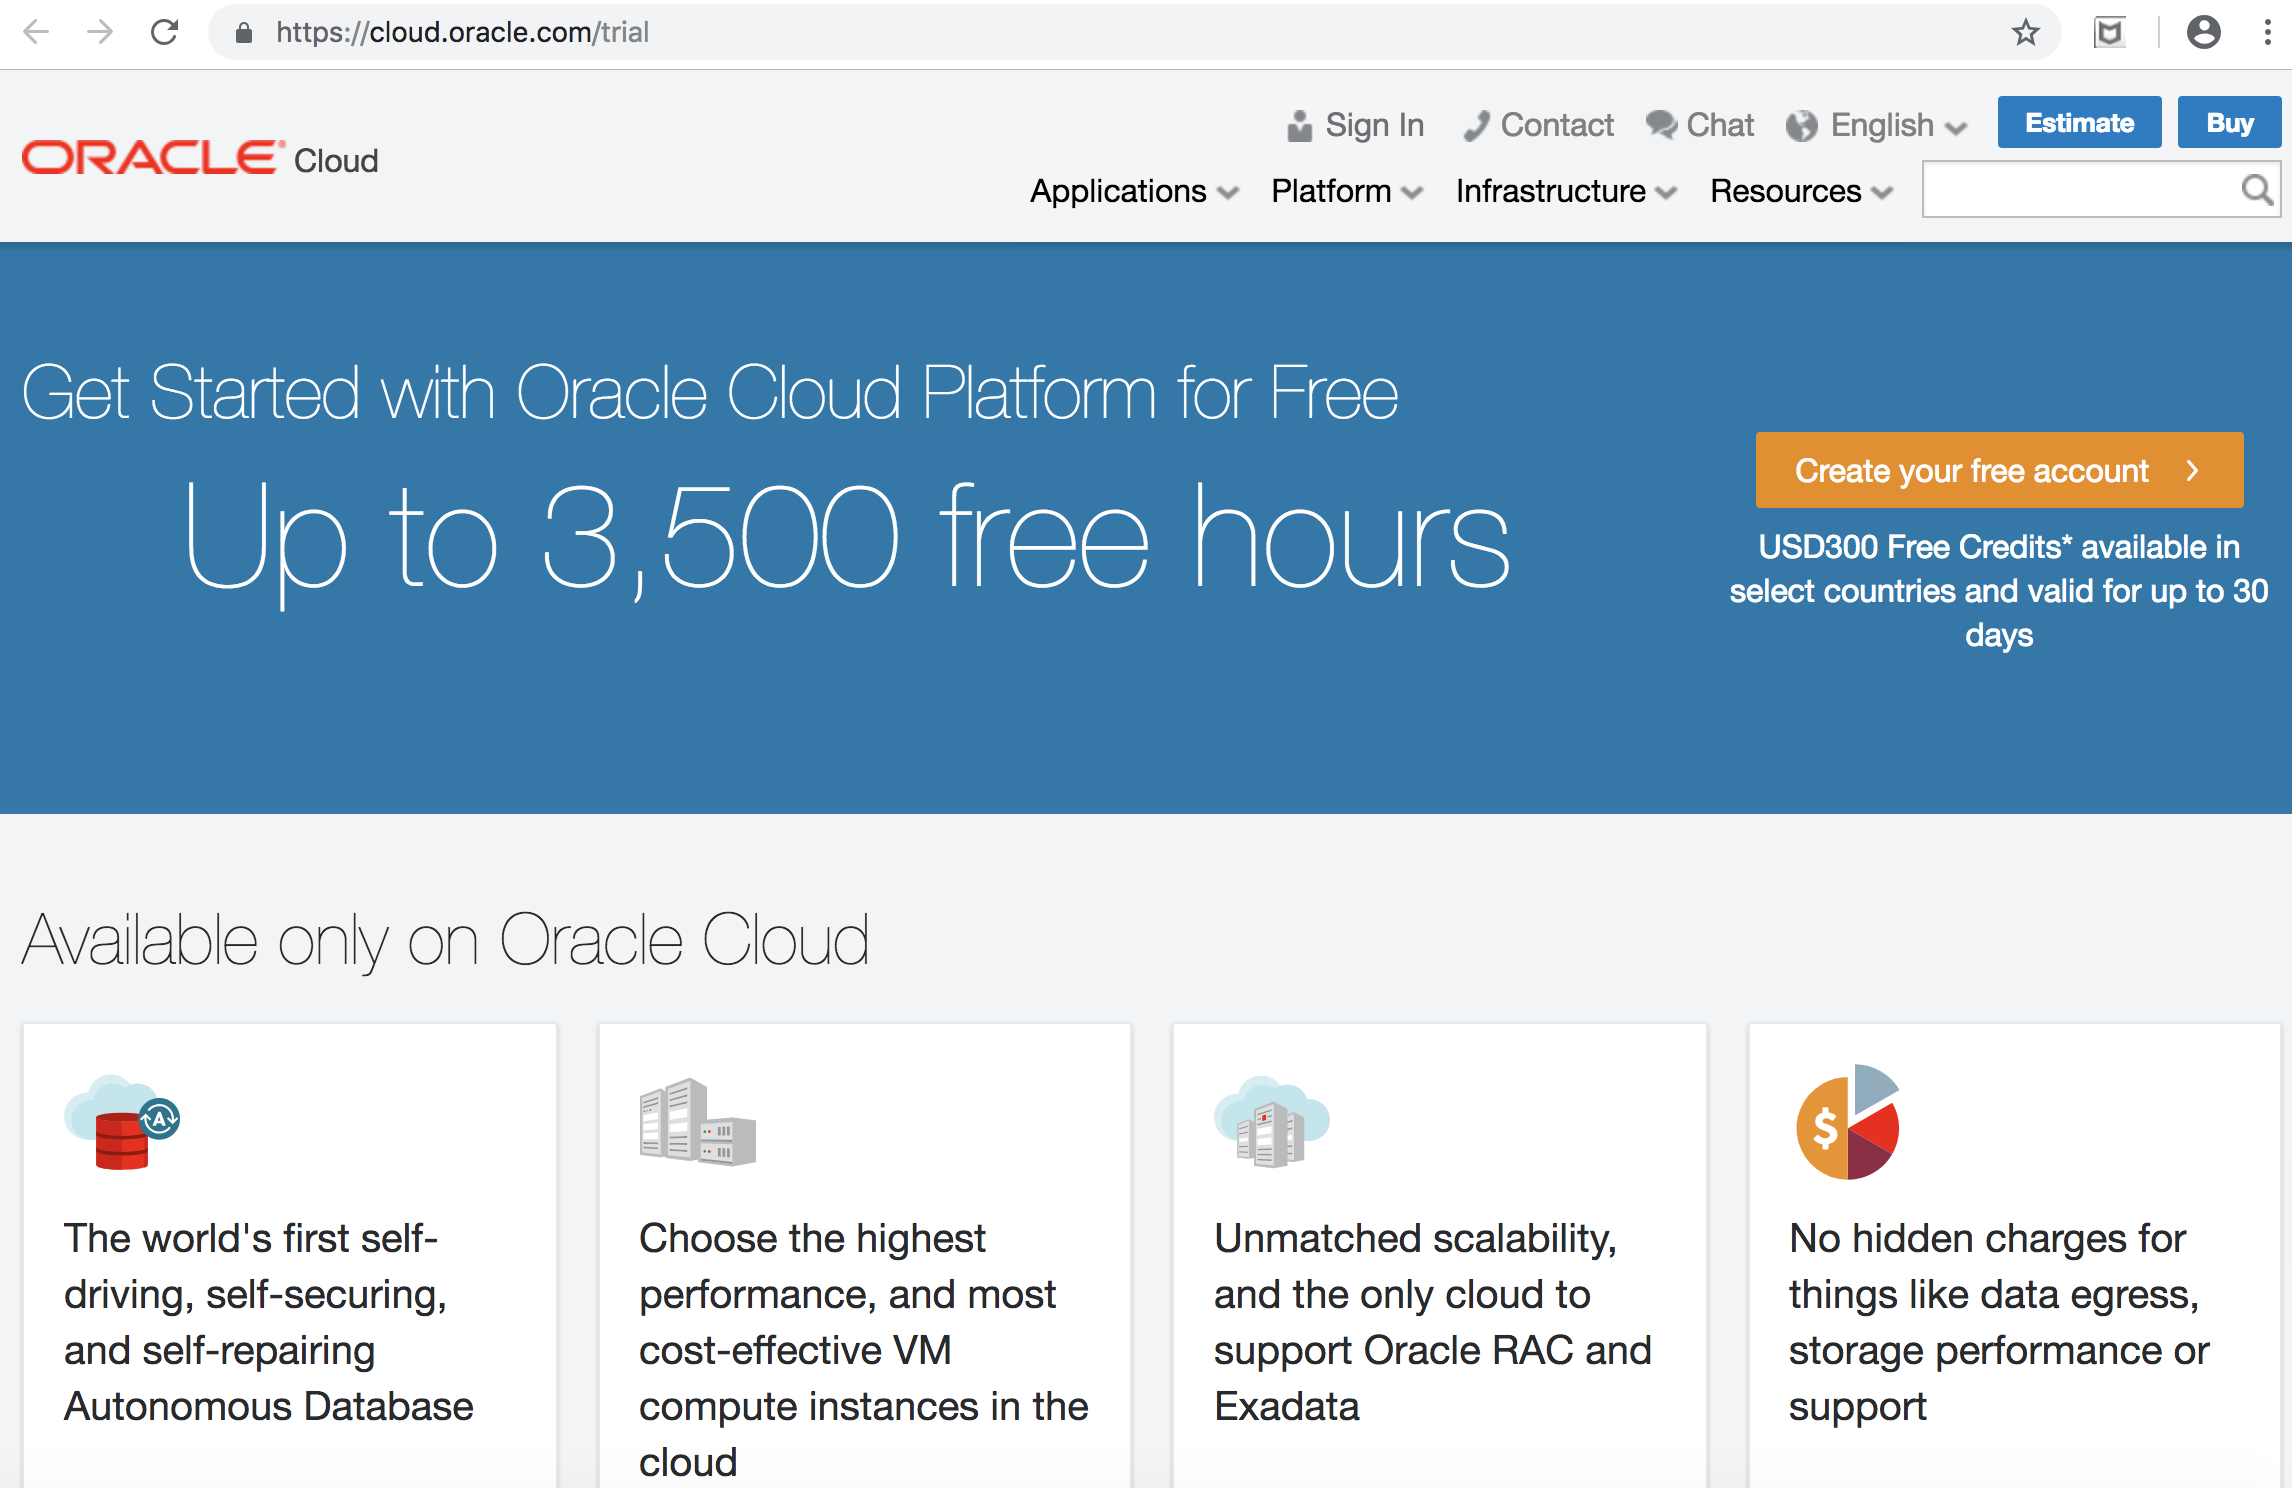 Signup to the Oracle Cloud